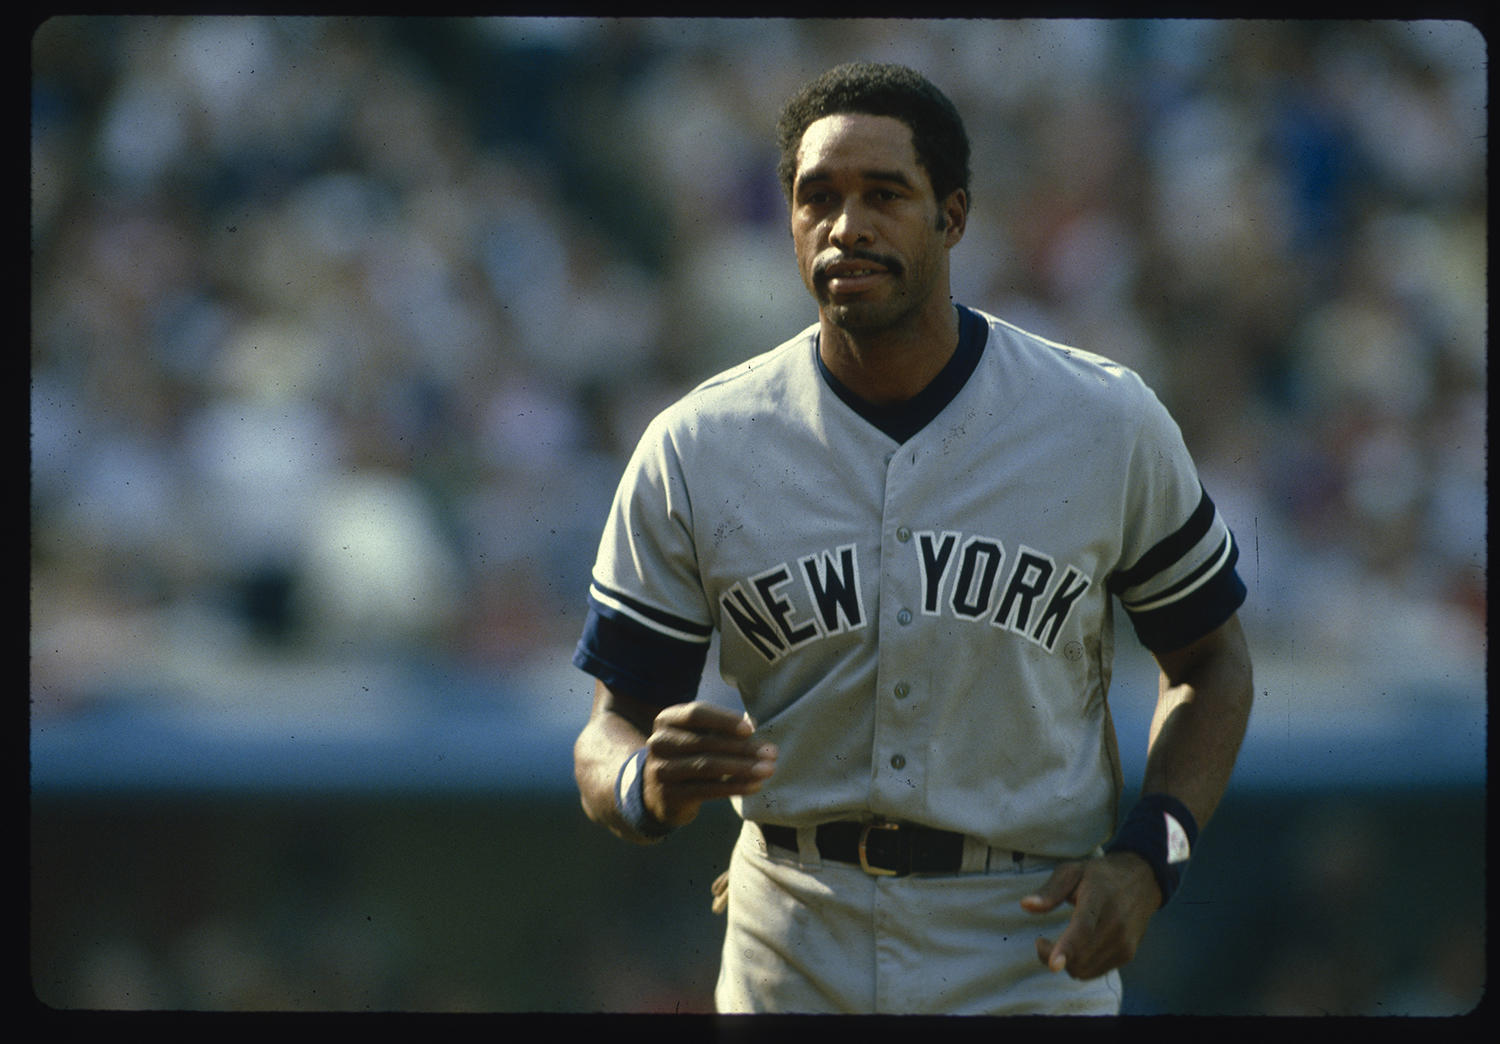 Dave Winfield during his first World Series appearance in 1981. (Anthony Neste / National Baseball Hall of Fame Library)